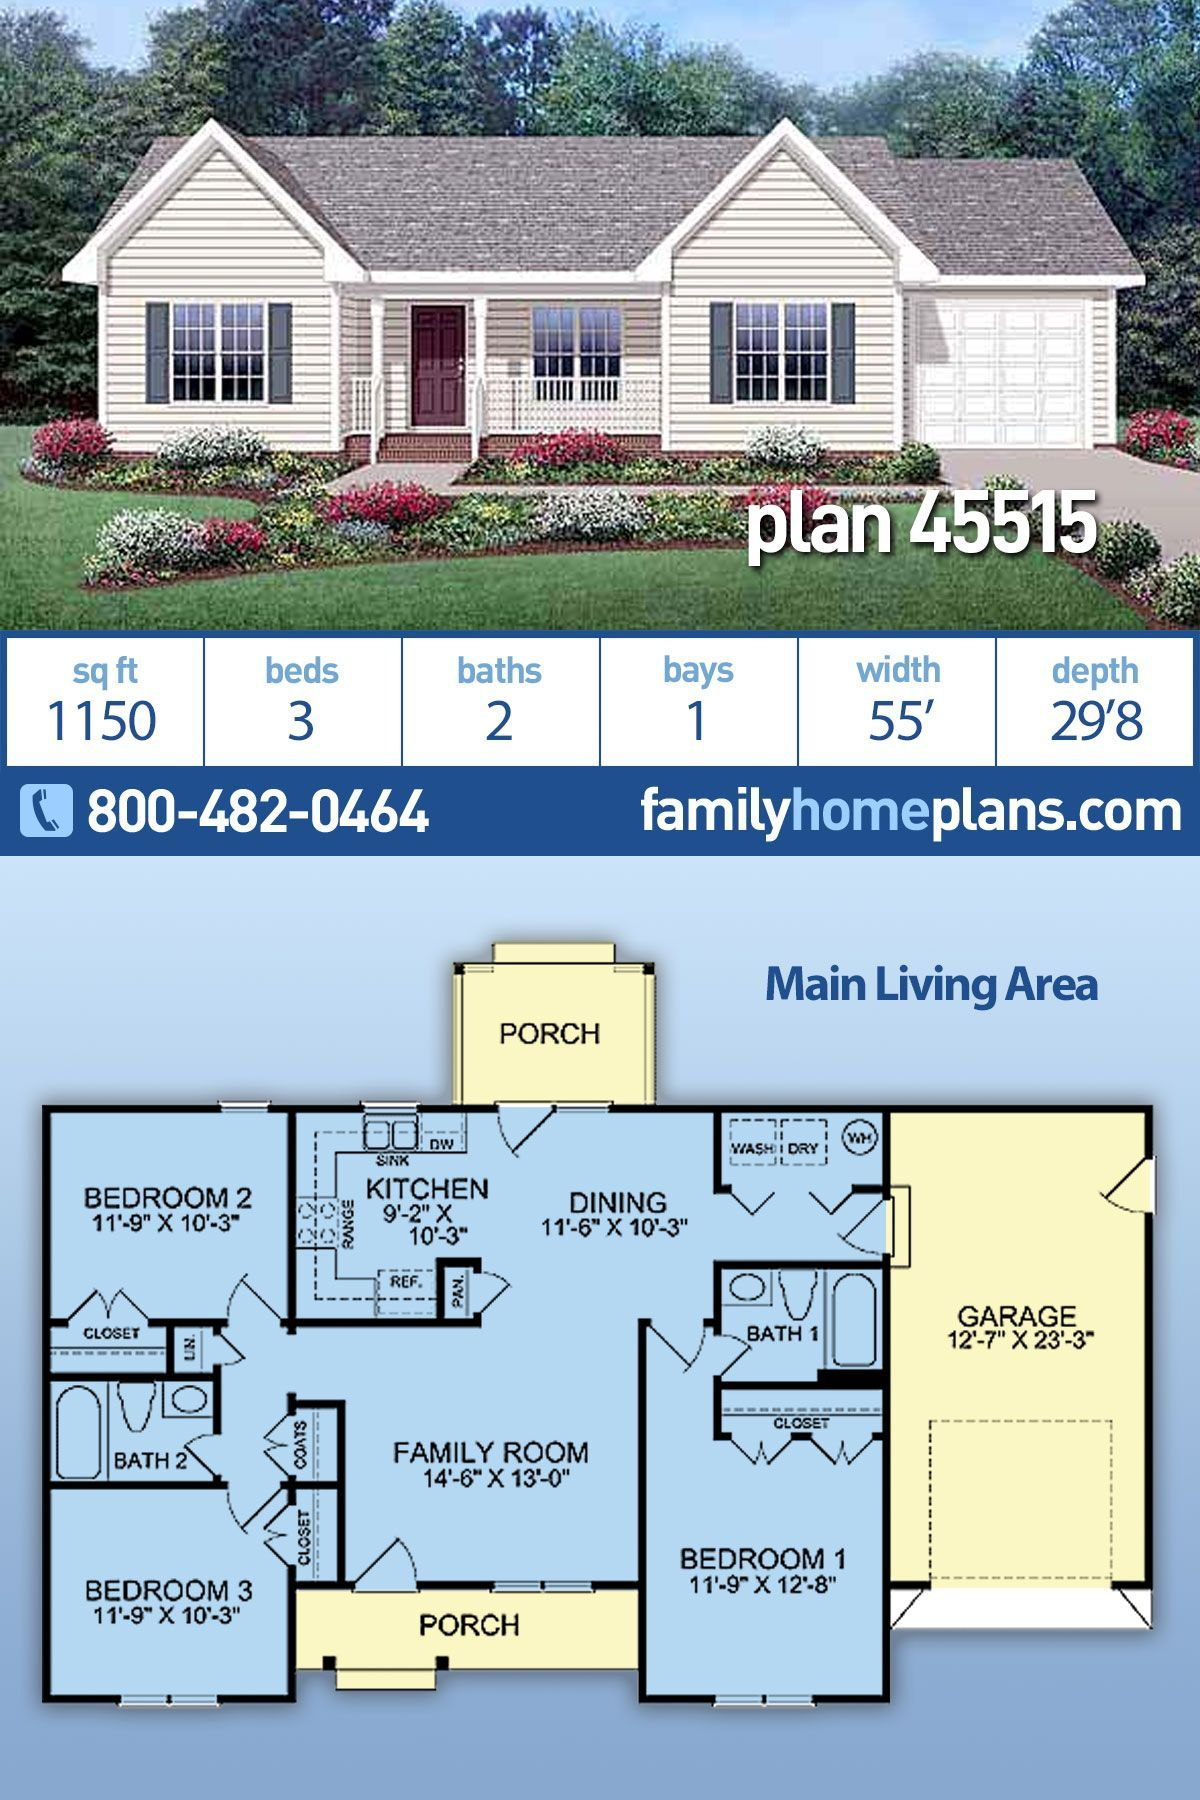 Simple Efficient Starter Home For First Time Home Builders At Family Home Plans In 2020 Family House Plans Ranch Style House Plans Sims House Plans